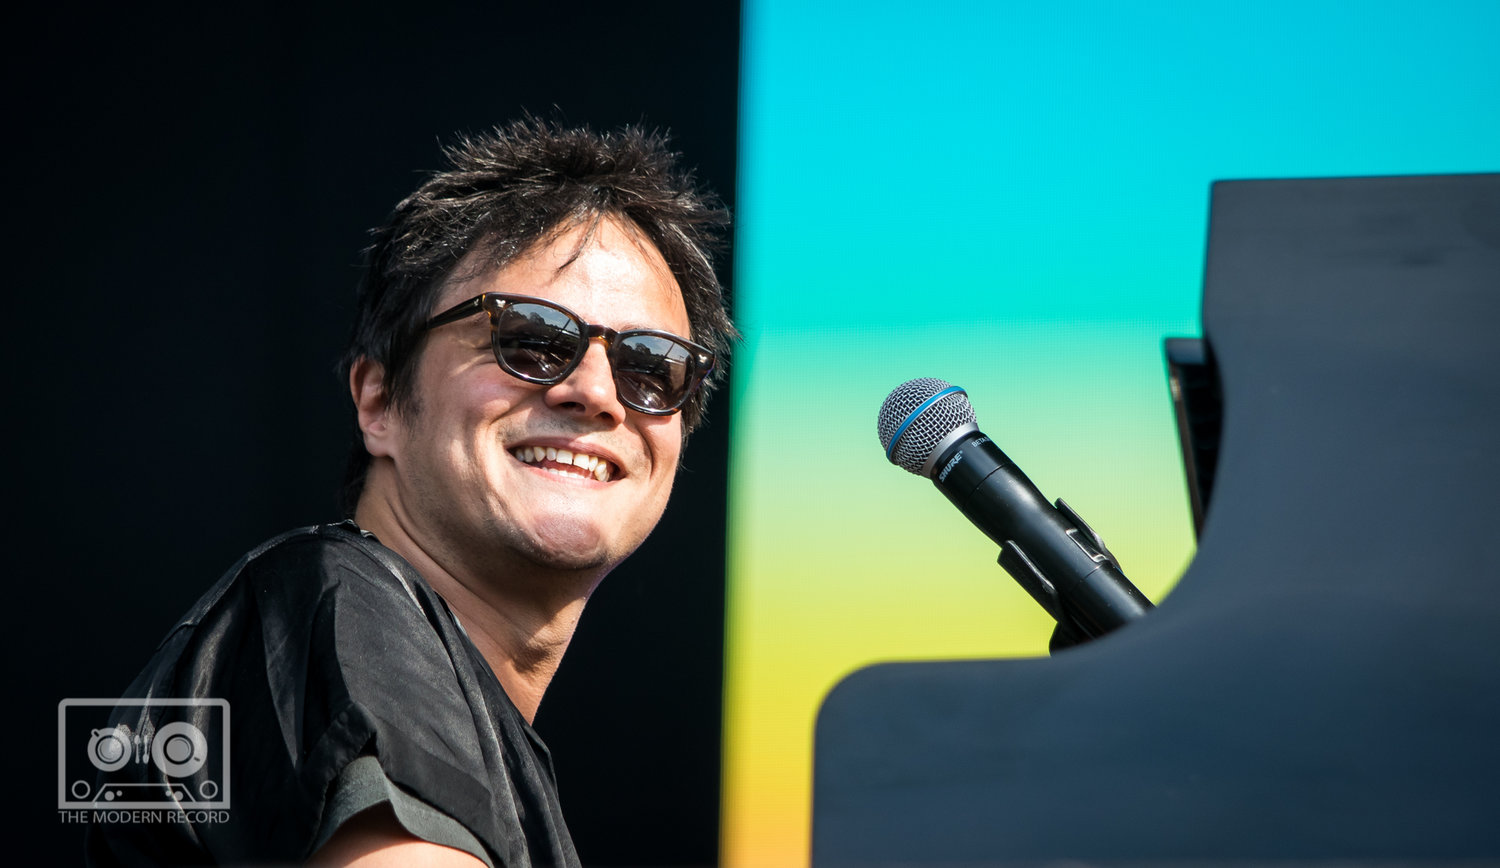 JAMIE CULLUM PERFORMING AT BBC BIGGEST WEEKEND IN PERTH - 25.05.2018 PICTURE BY: STEPHEN WILSON PHOTOGRAPHY